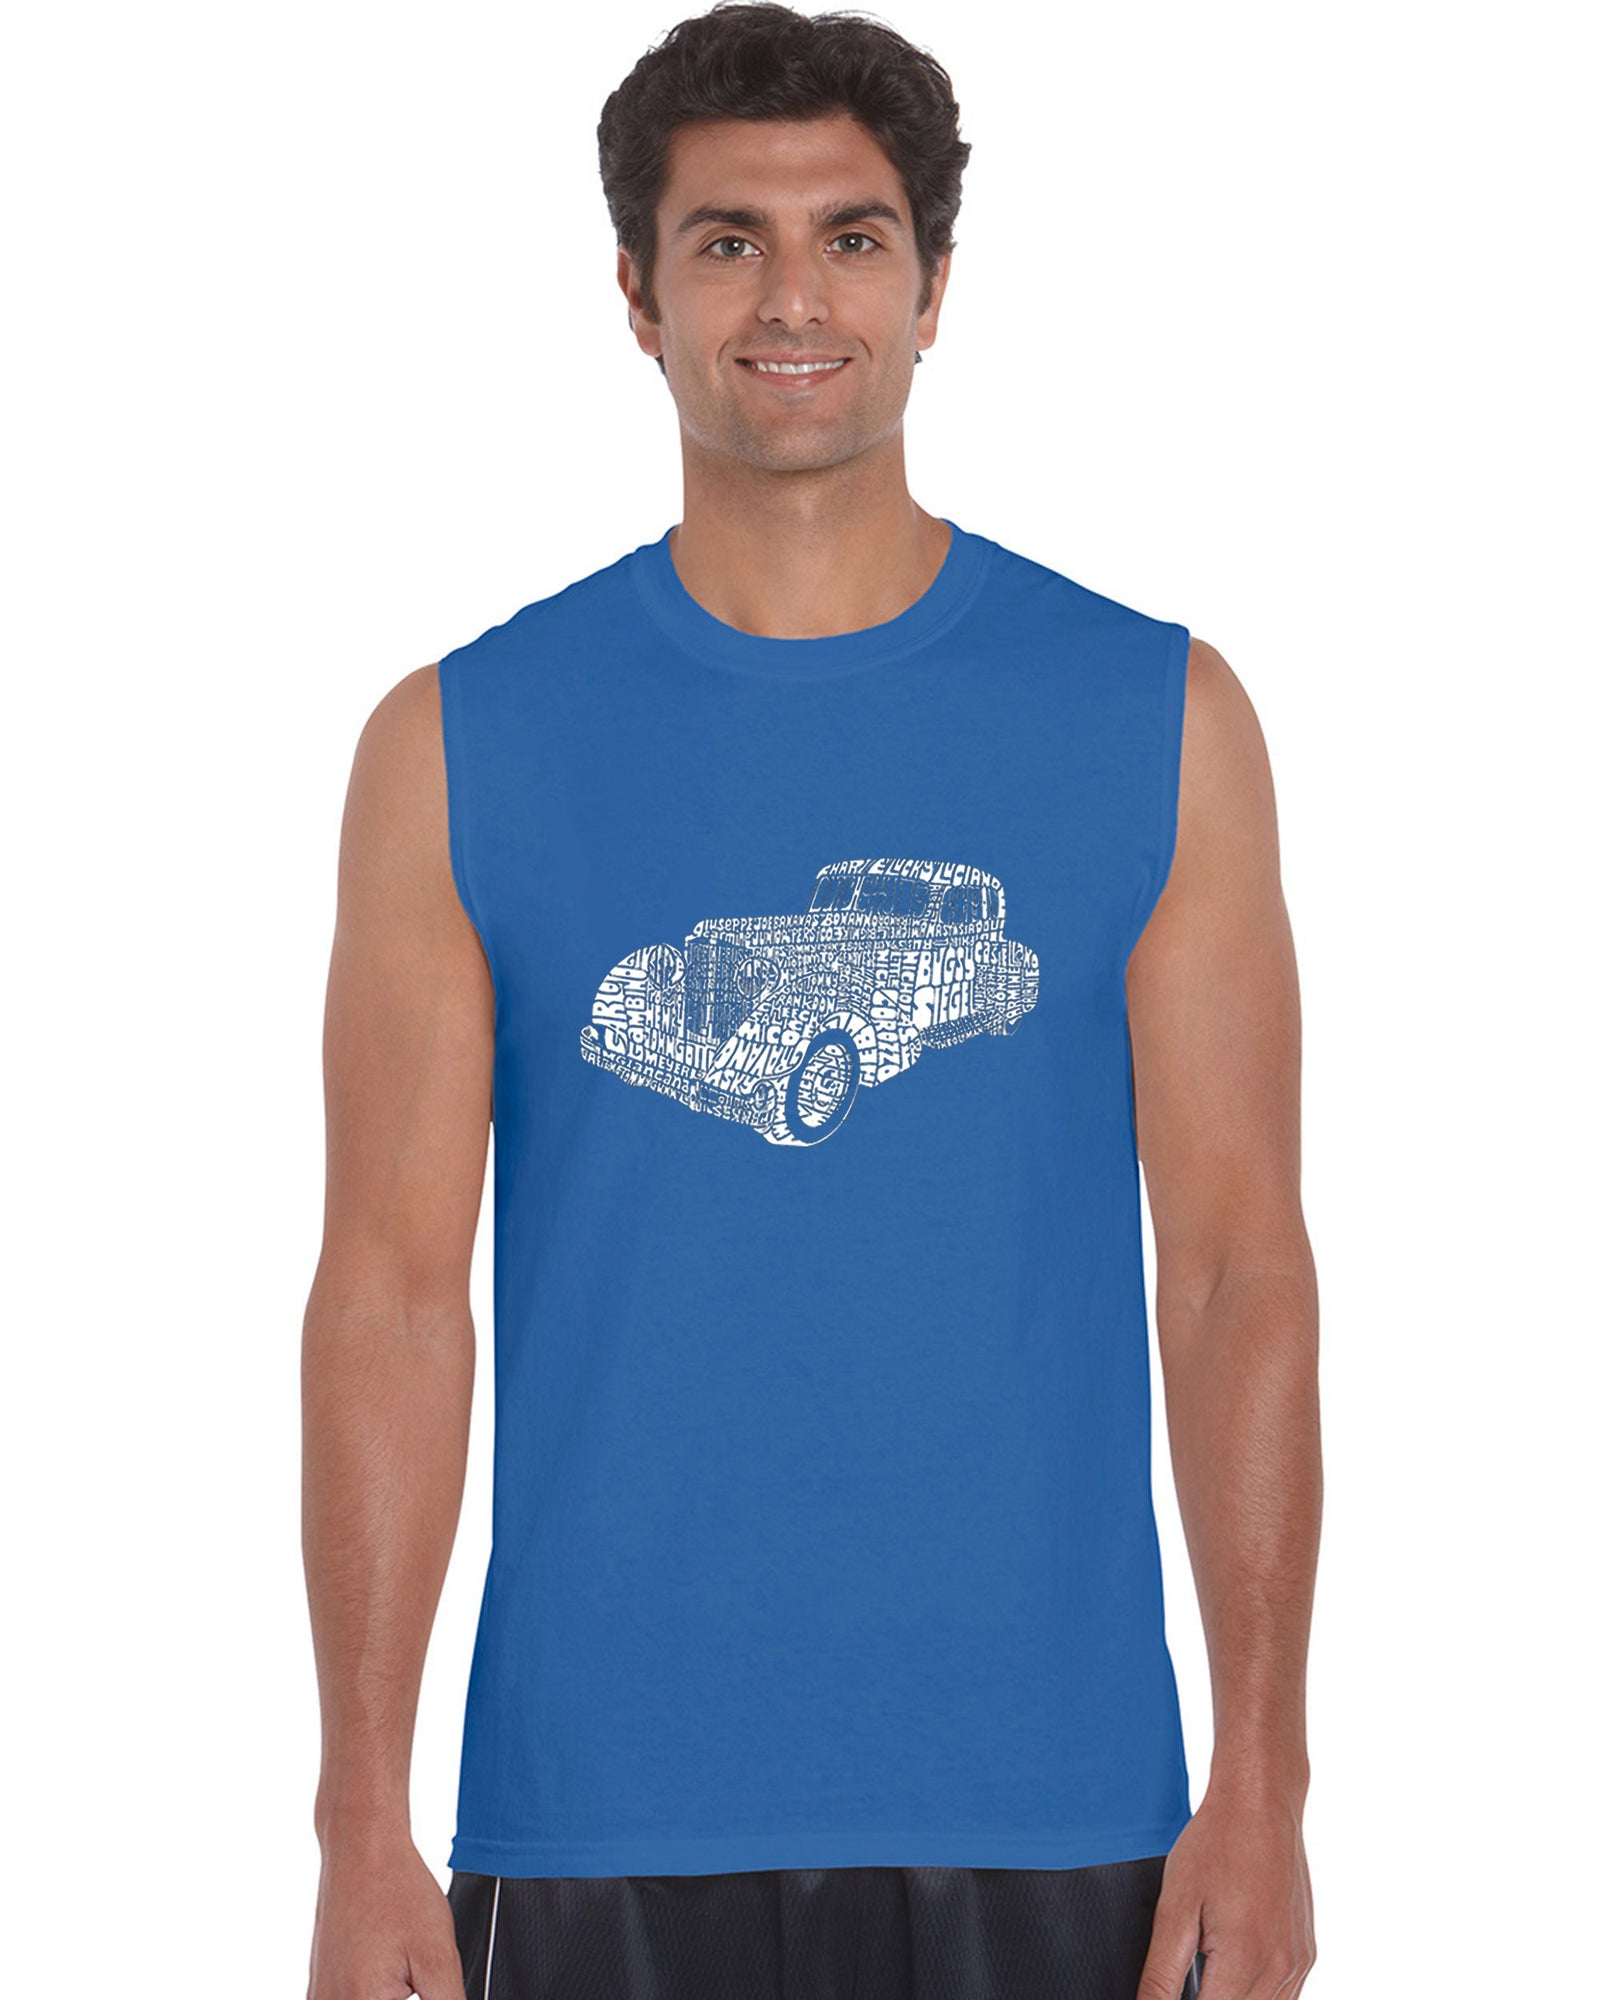 Men's Sleeveless T-shirt - Mobsters